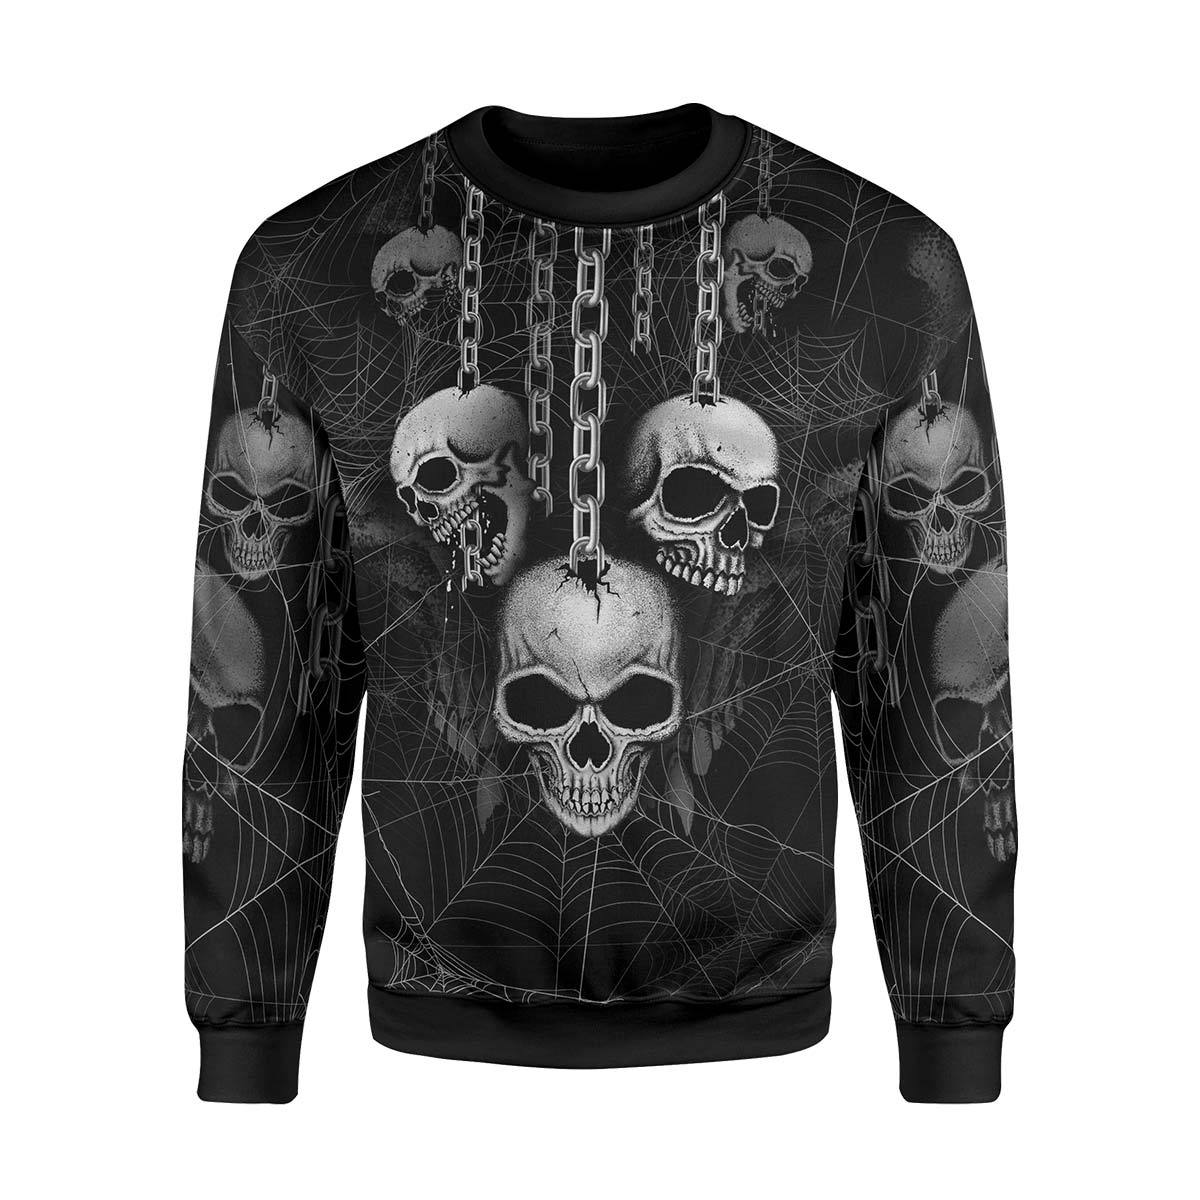 Chains & Webs Sweatshirt